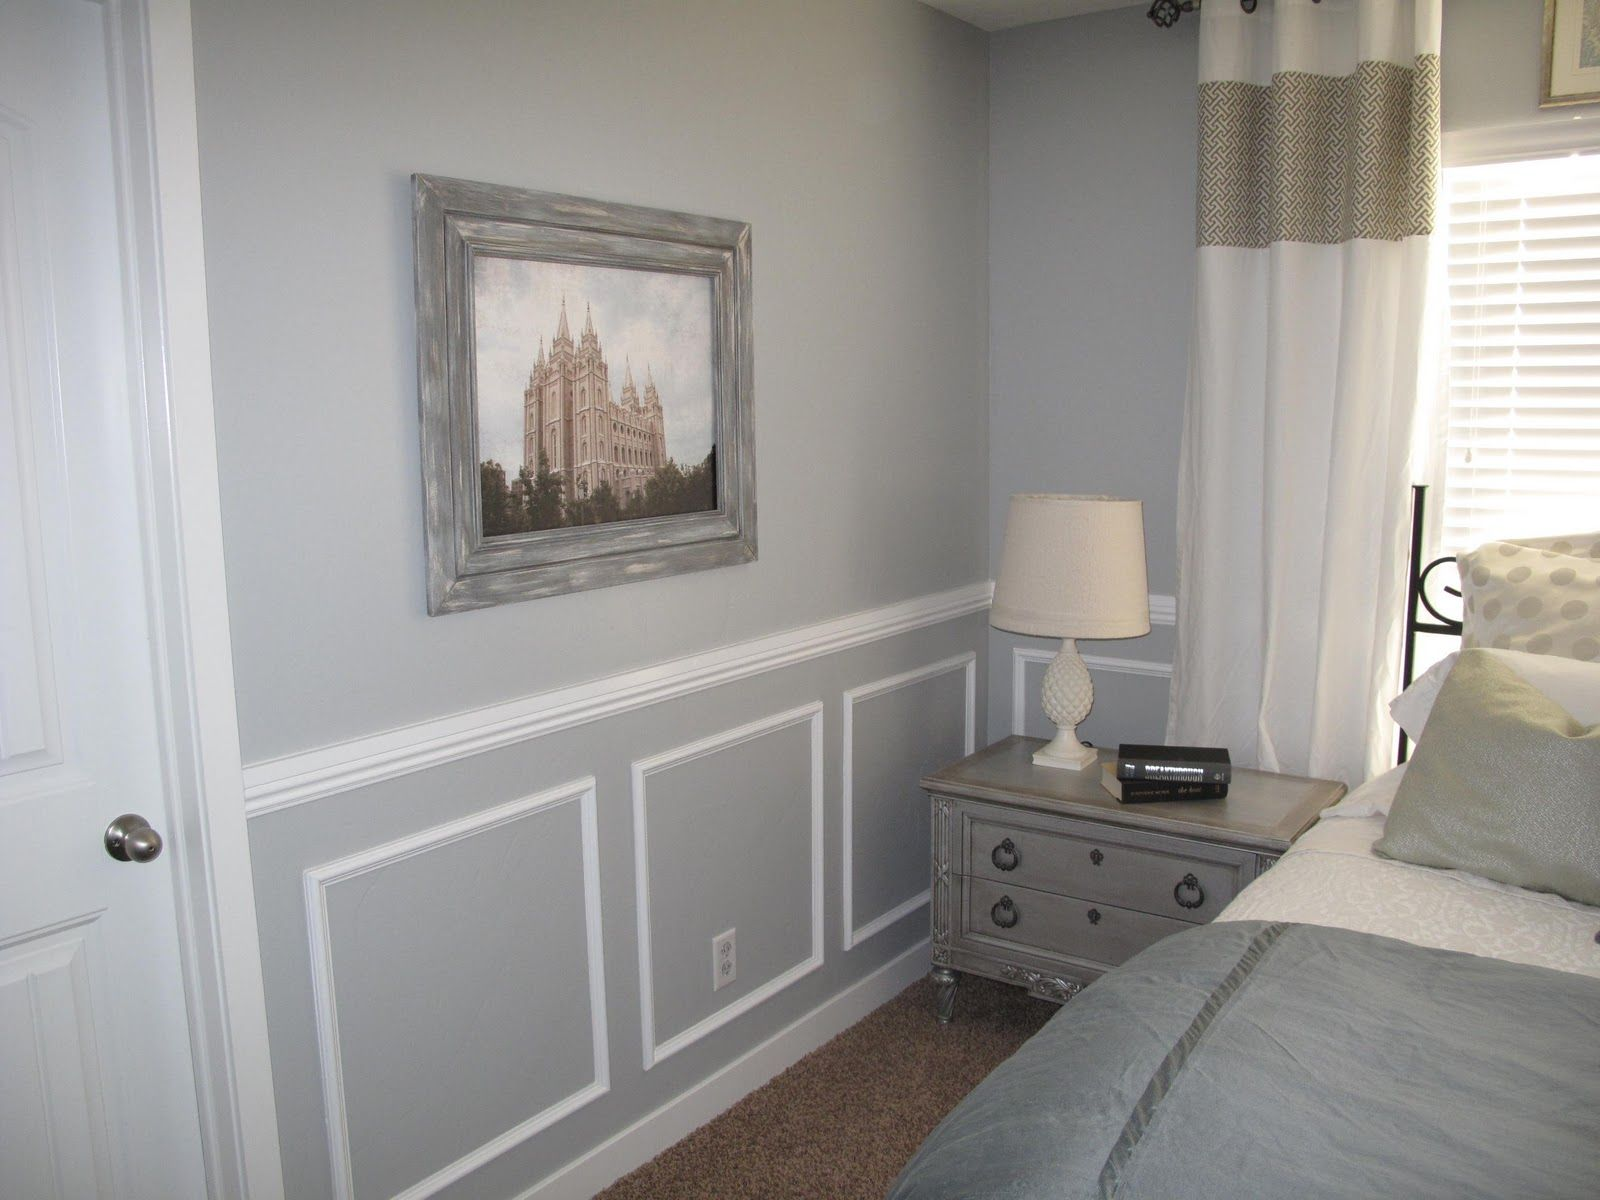 Pin By Katie Day On Home Decor Wainscoting Bedroom Wainscoting